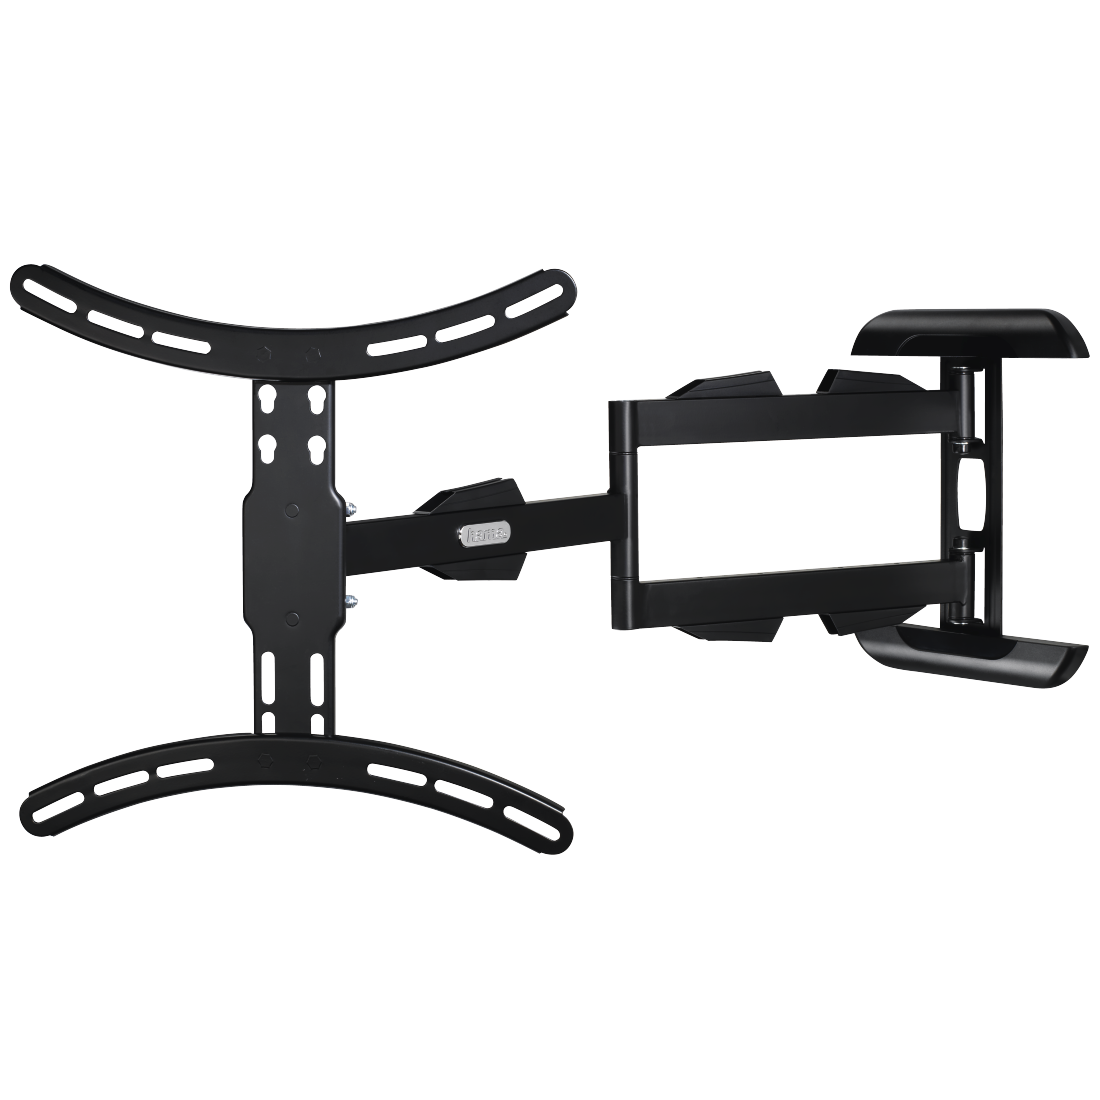 "abx2 High-Res Image 2 - Hama, FULLMOTION TV Wall Bracket, 3 Stars, 165 cm (65""), 2 arms, ultra-long"